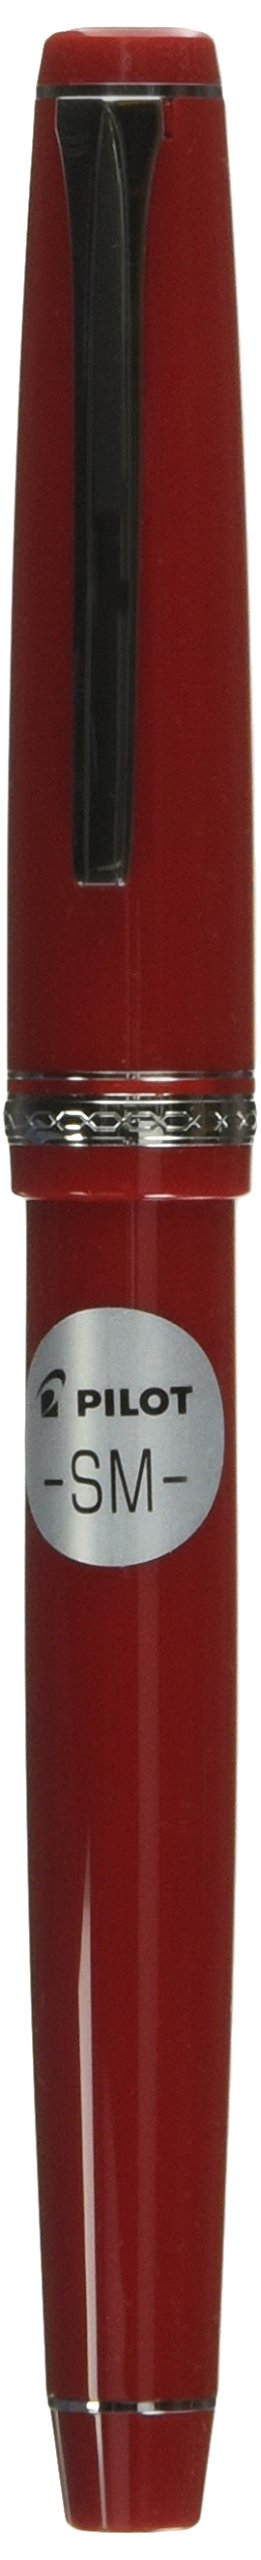 PILOT Falcon Collection Fountain Pen, Red Barrel with Rhodium Accents, Soft Medium Nib, Blue Ink (71622)